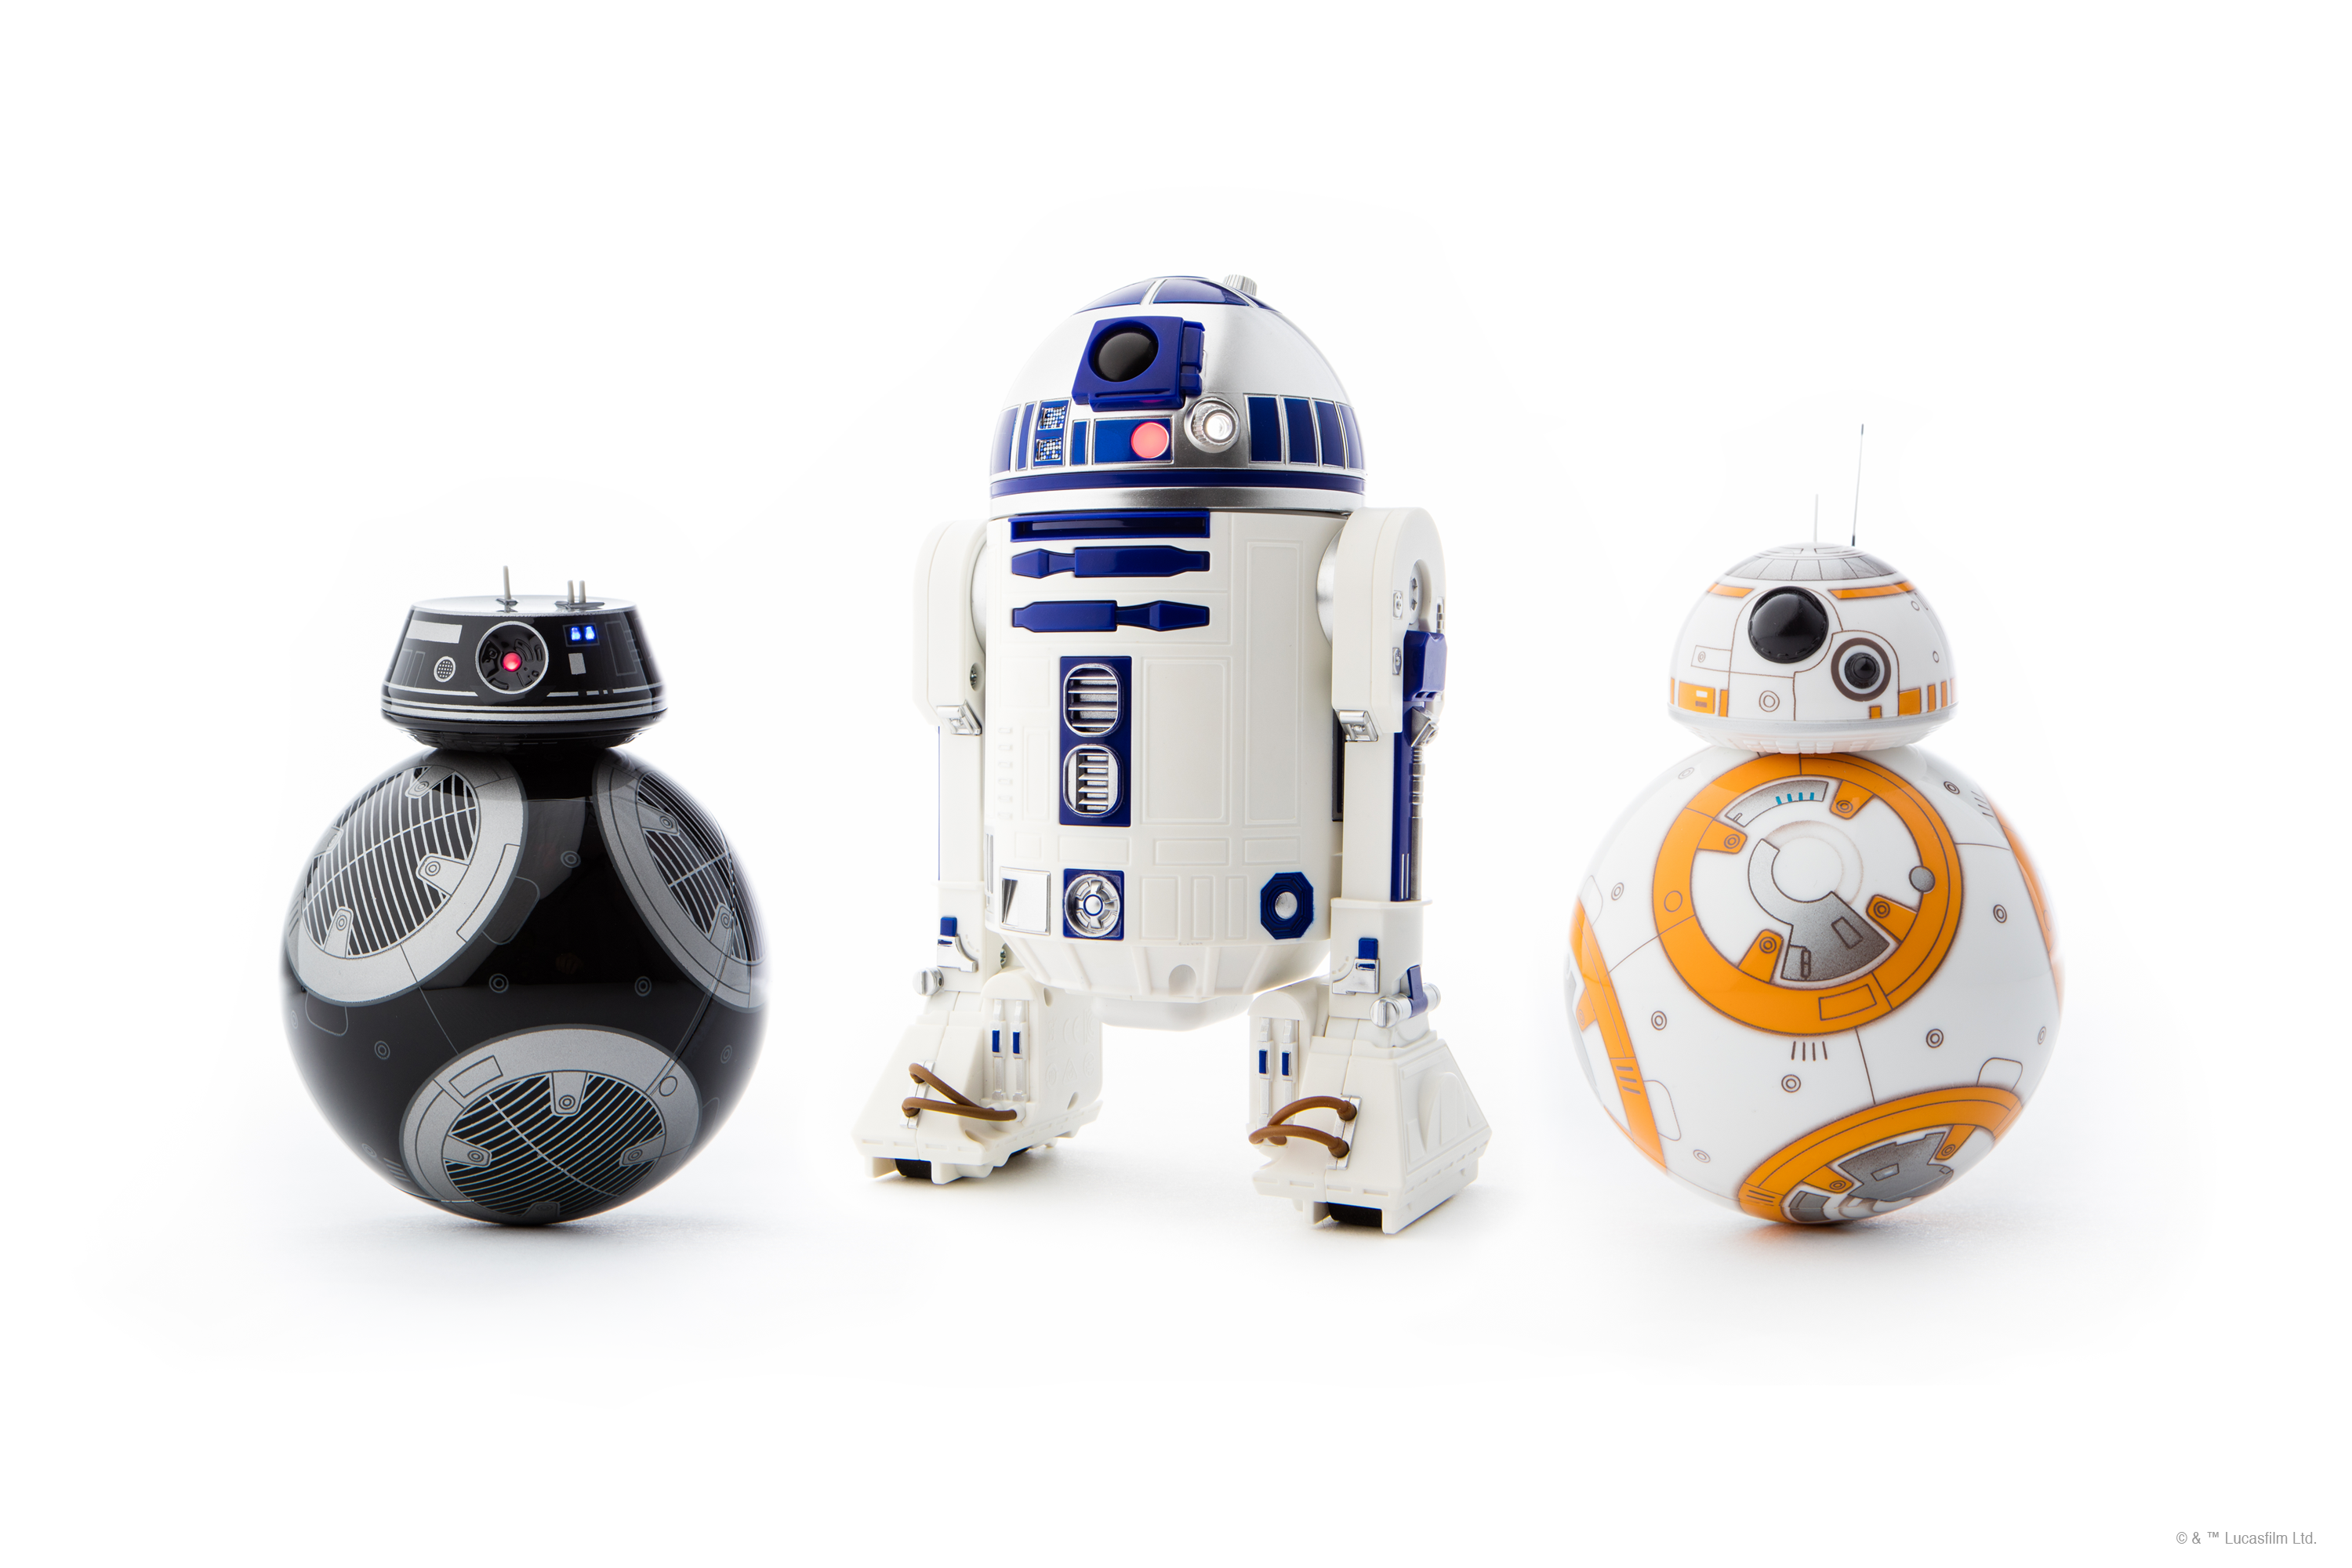 Sphero's new Star Wars droids: BB-9E, R2-D2, and BB-8